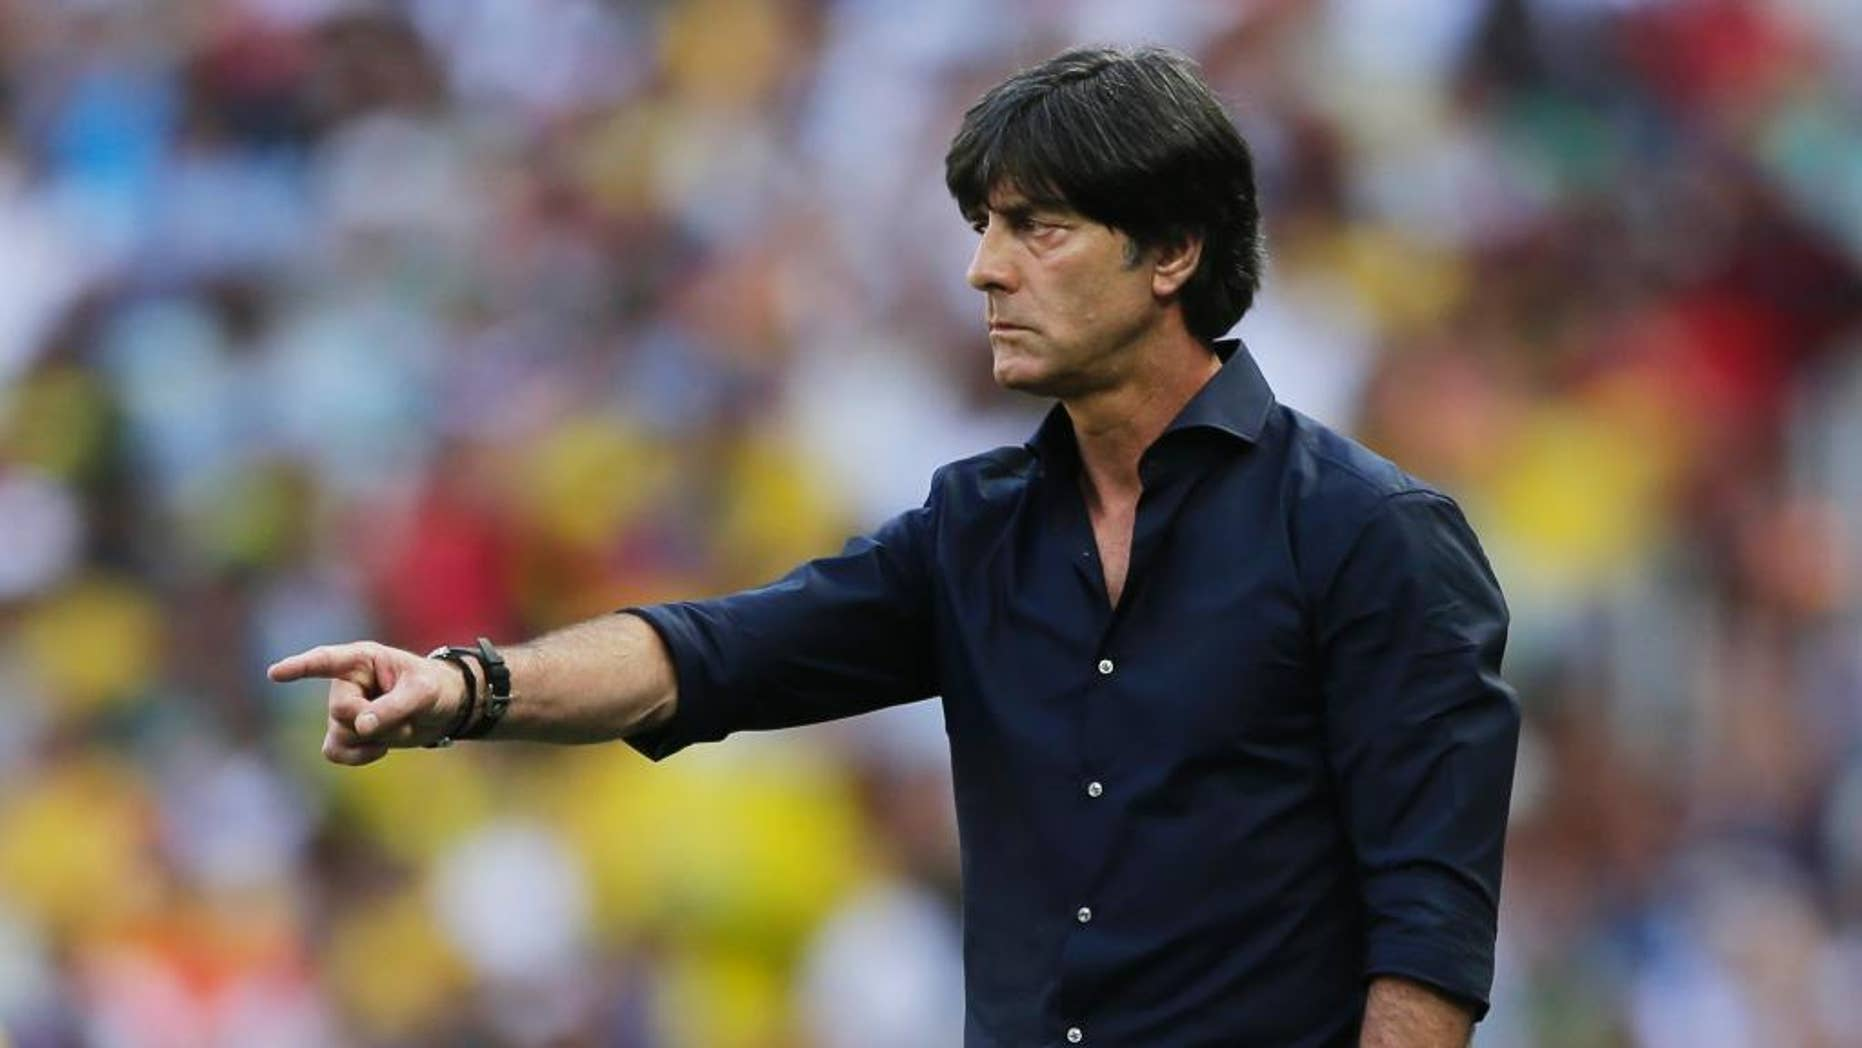 Germany's head coach Joachim Loew gestures during the group G World Cup soccer match between Germany and Ghana at the Arena Castelao in Fortaleza, Brazil, Saturday, June 21, 2014. (AP Photo/Matthias Schrader)